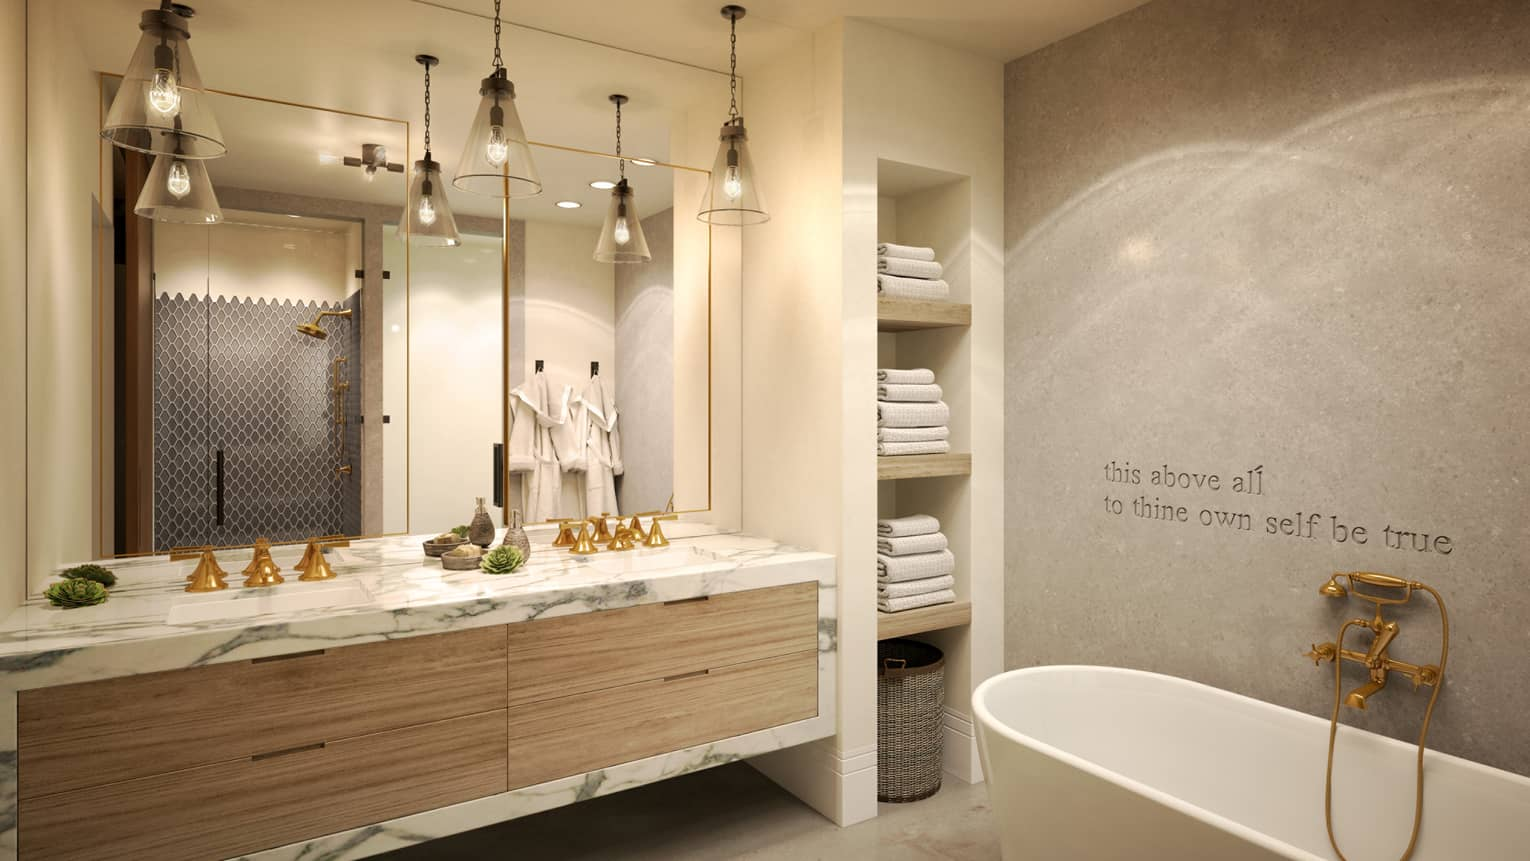 Rendering of large residence master bathroom with marble double vanity, soaker tub